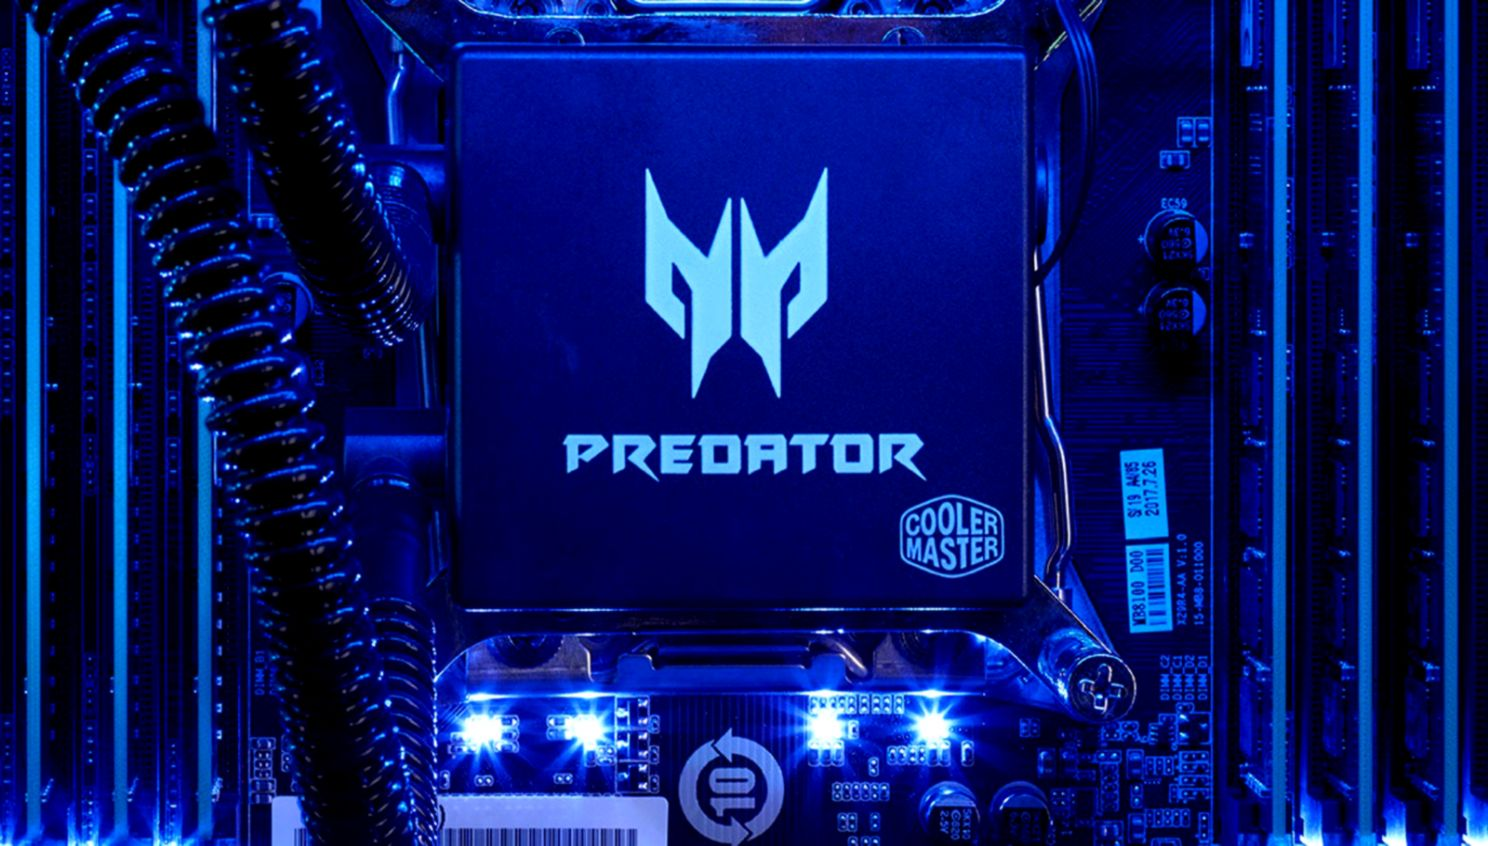 Acer Predator Wallpapers posted by Christopher Simpson